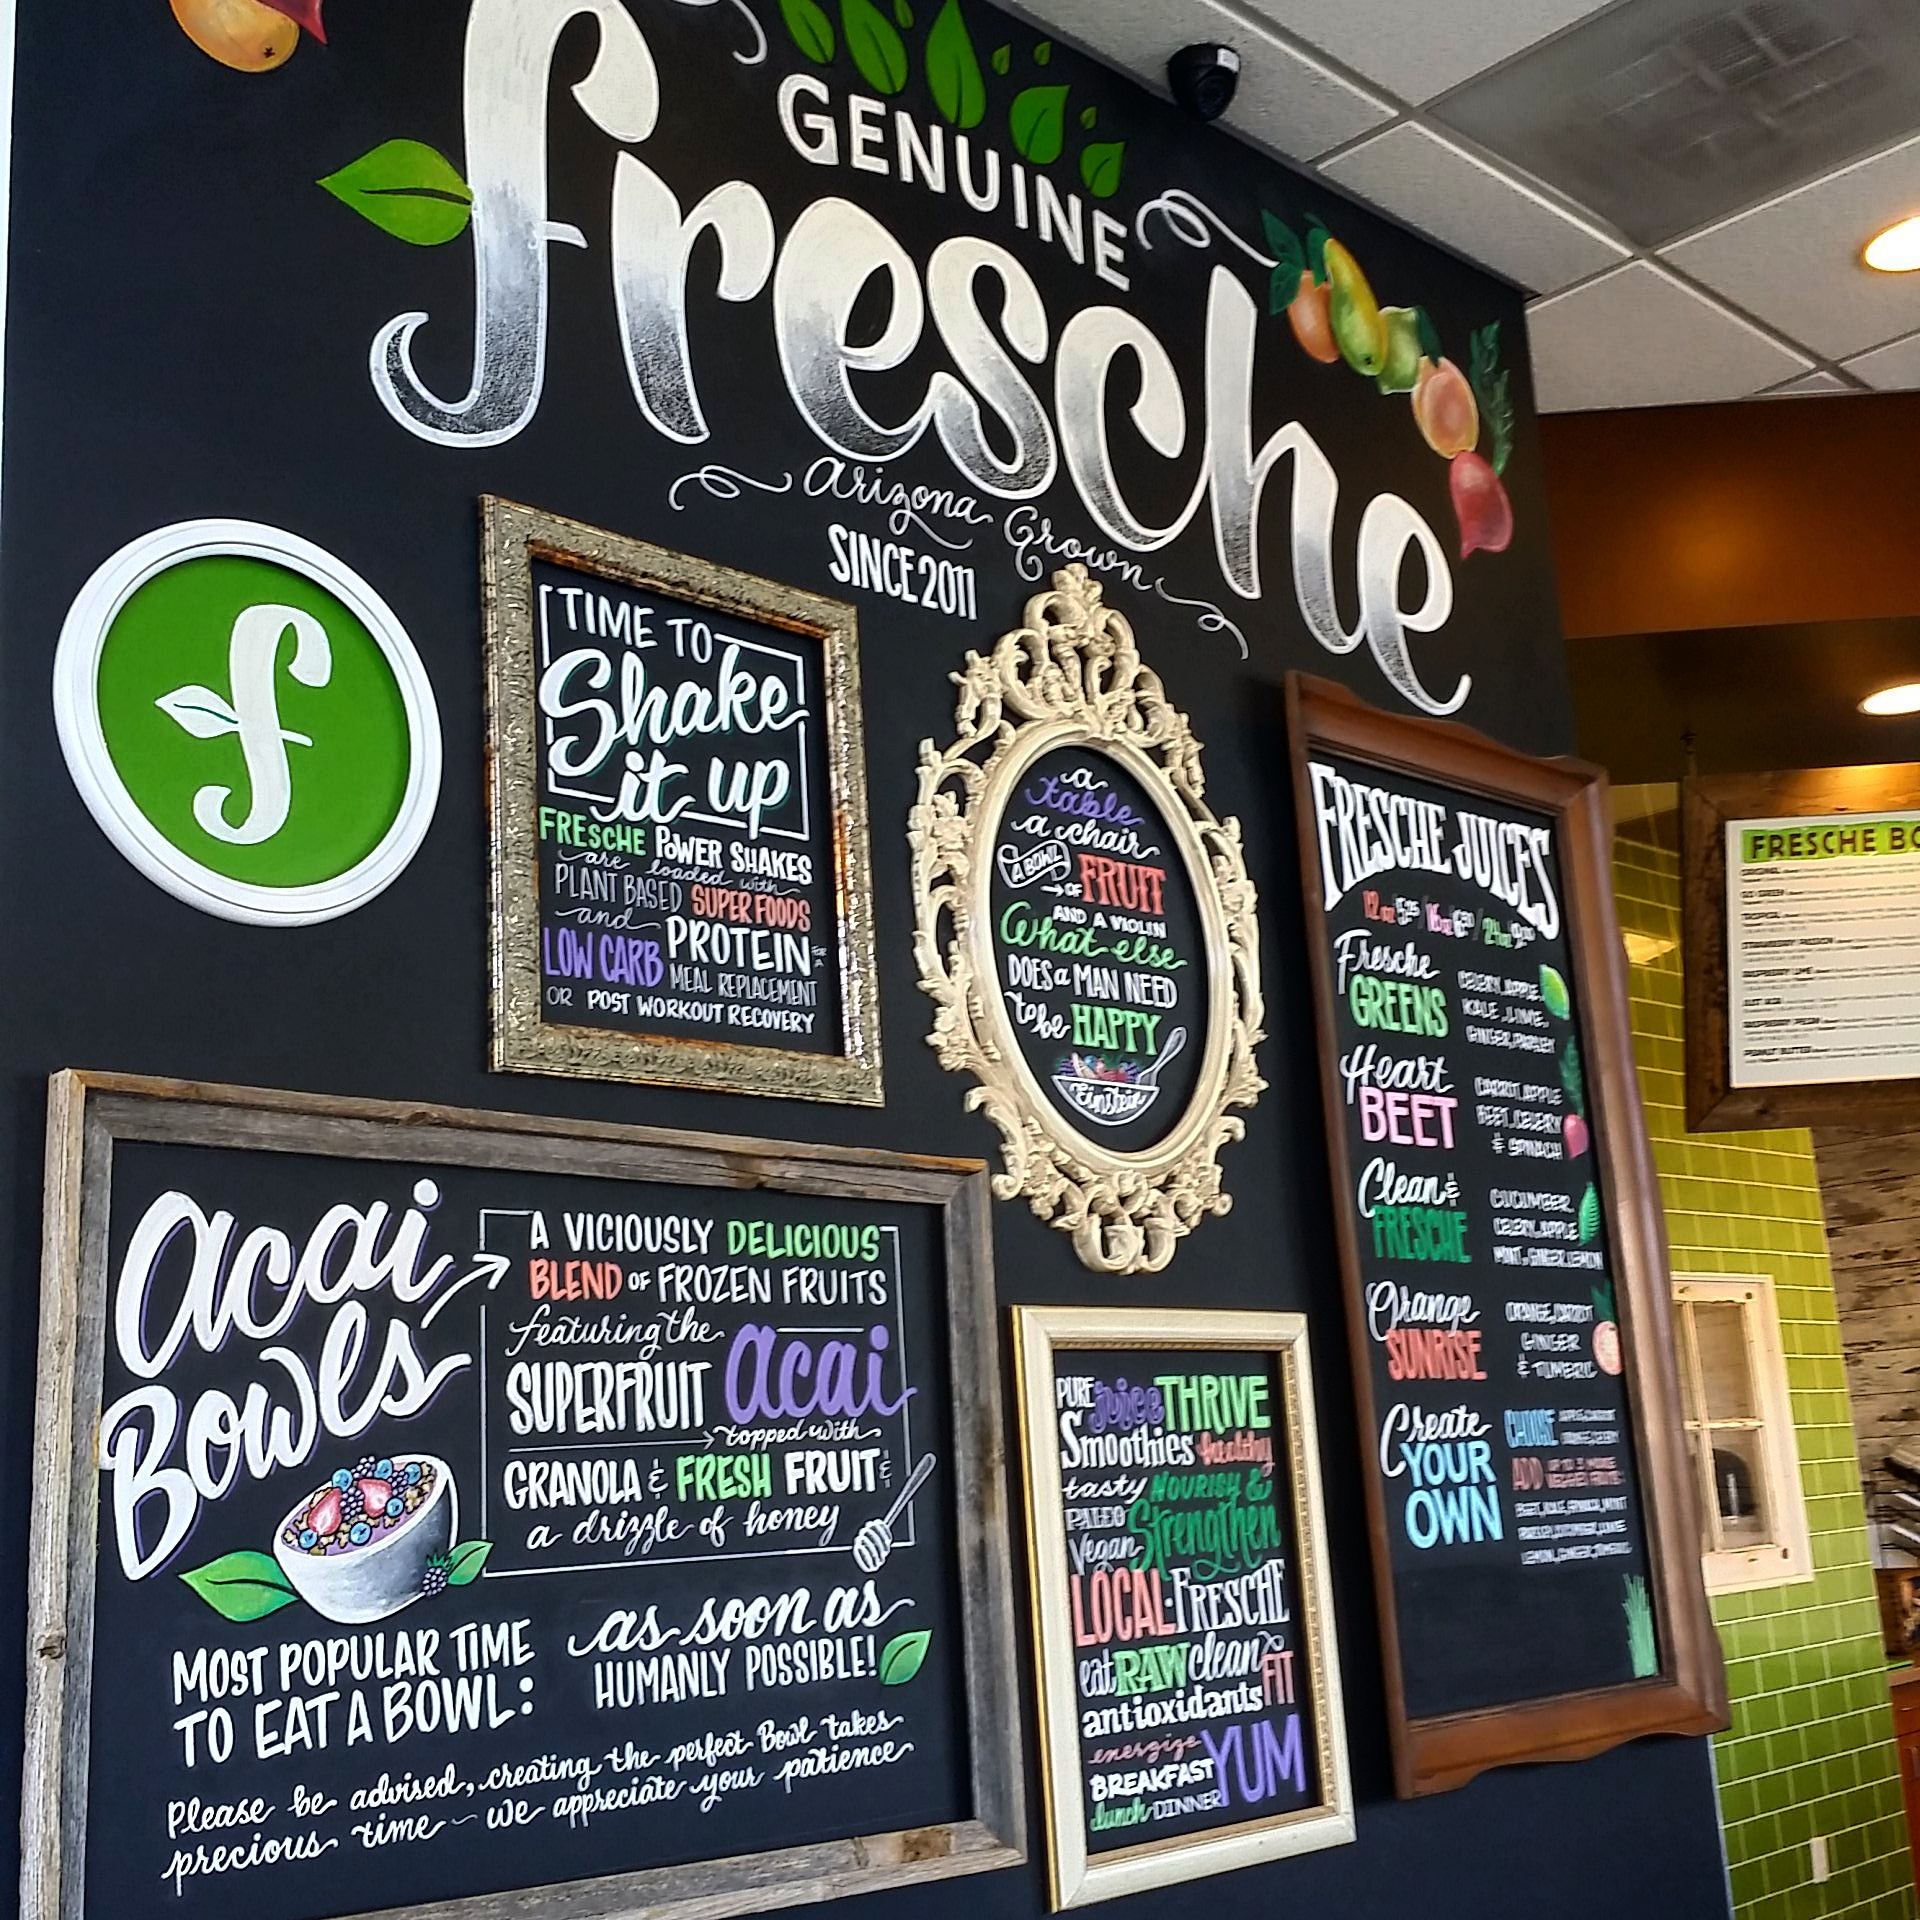 Genuine Fresche, Chandler, Arizona